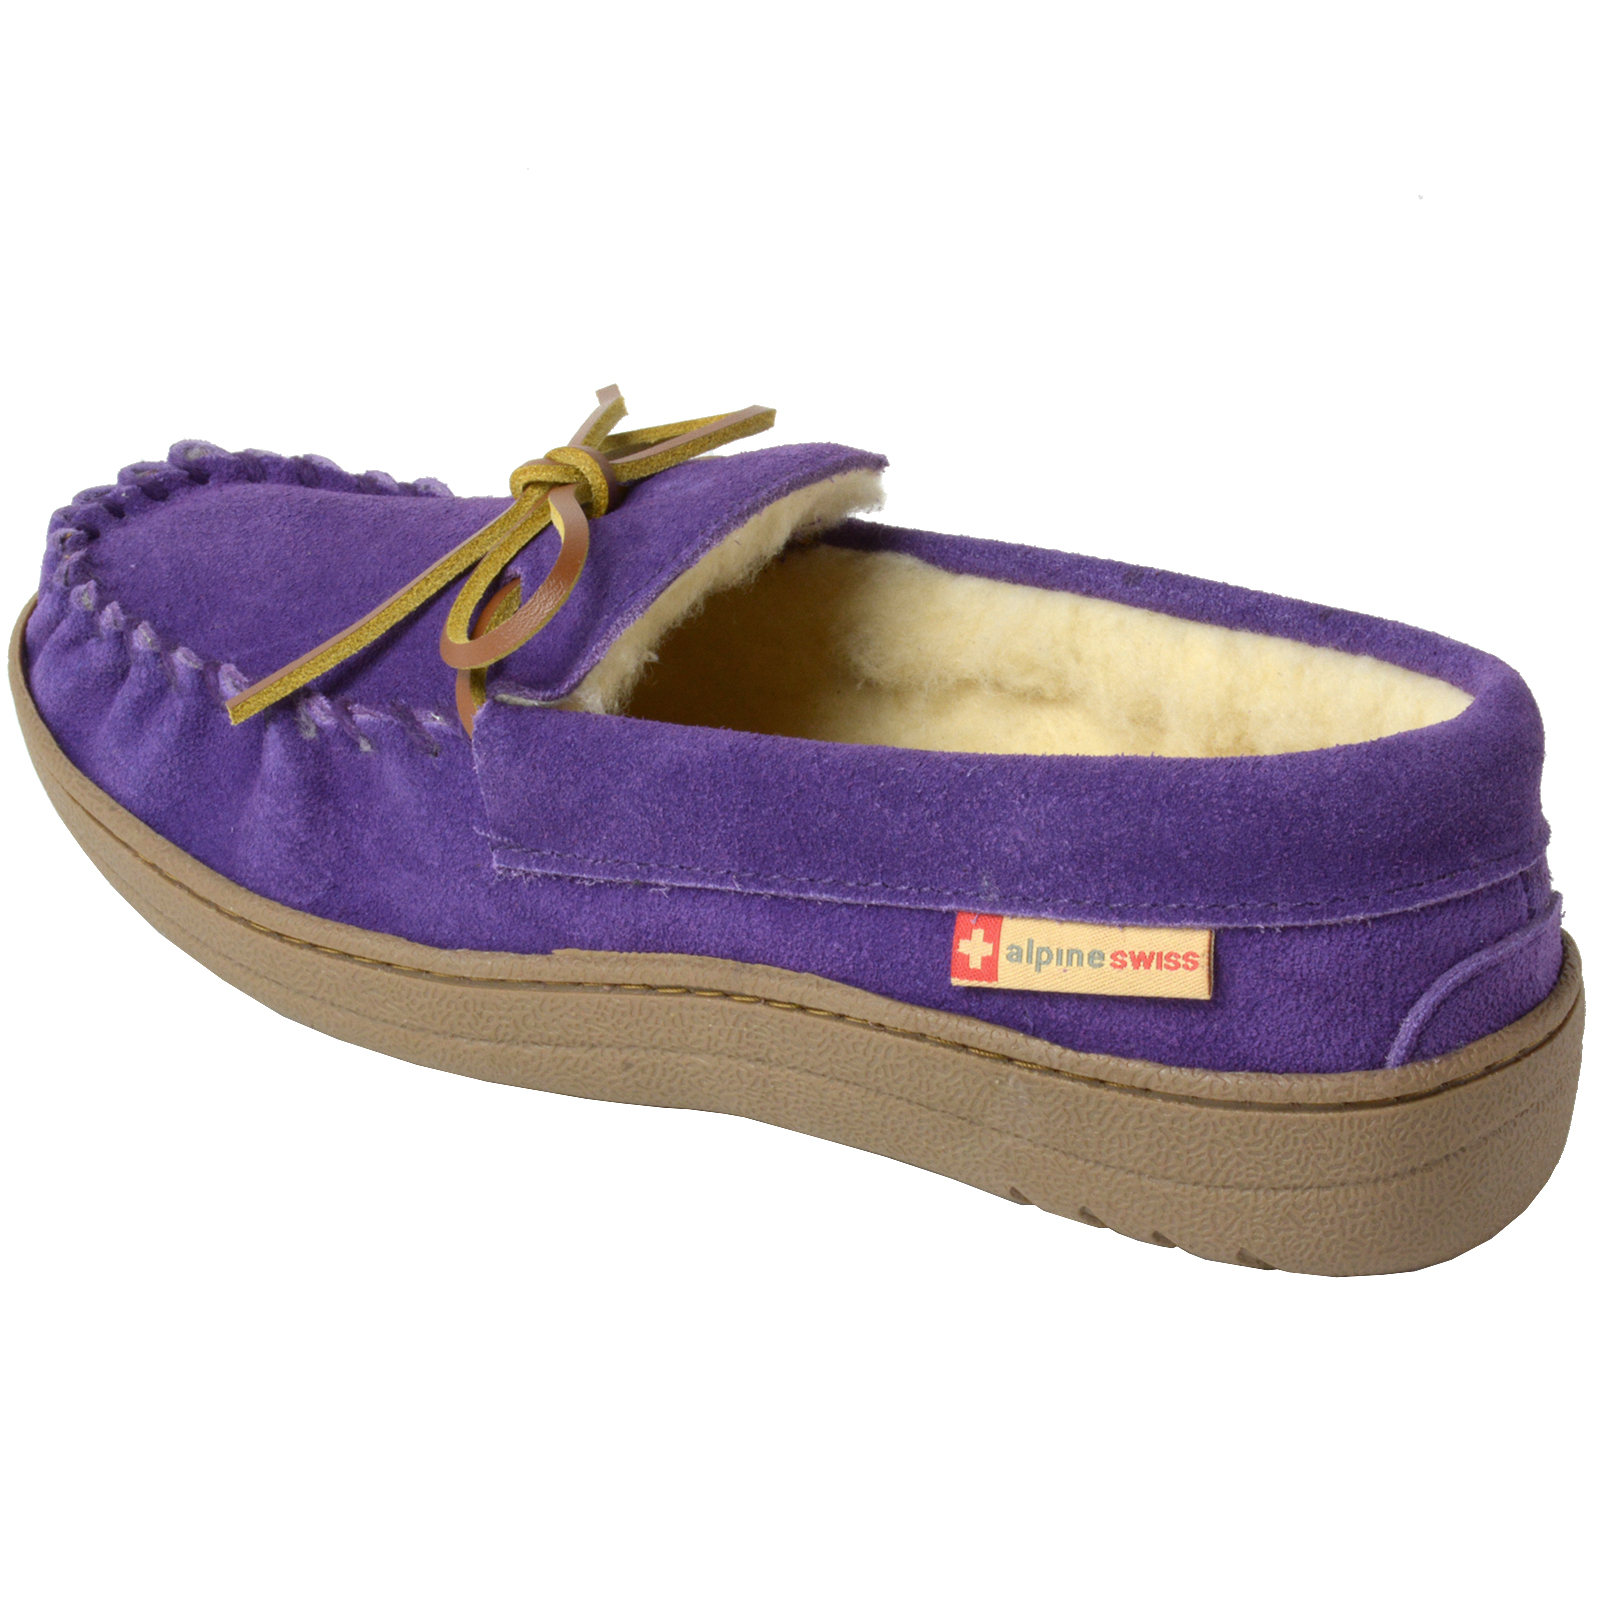 Alpine Swiss Sabine Womens Suede Shearling Moccasin Slippers House Shoes Slip On